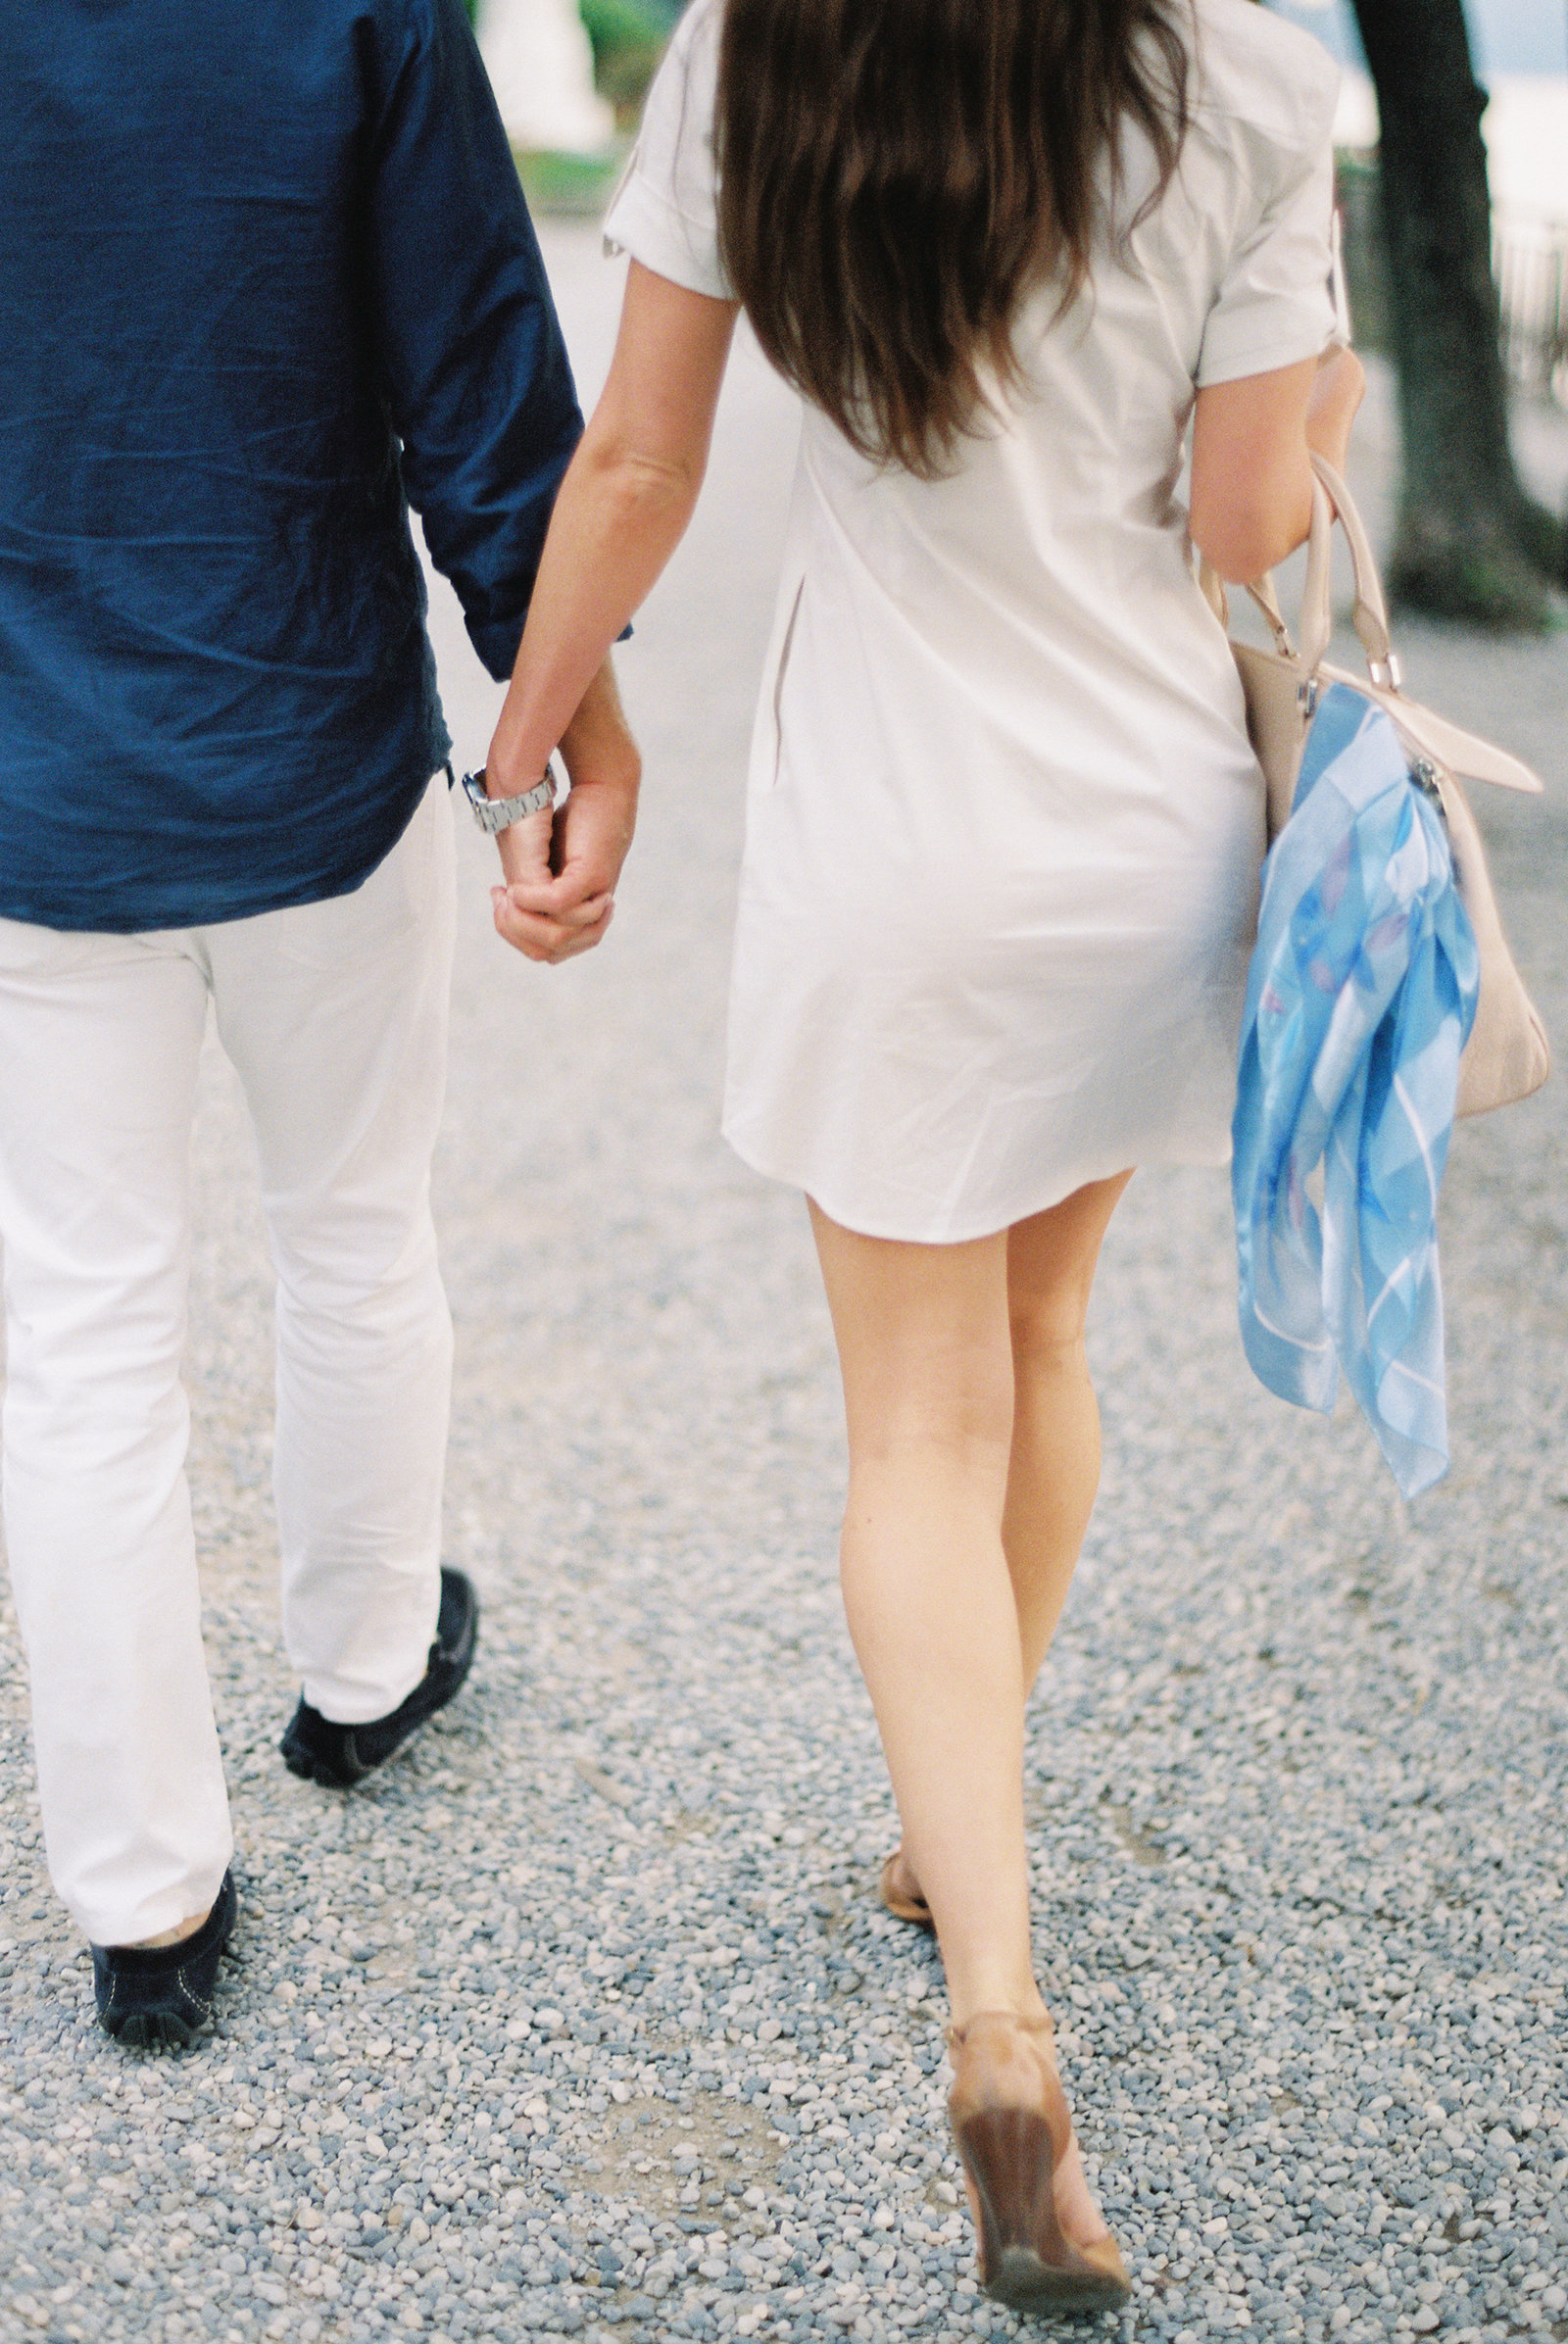 lake-como-italy-destination-wedding-honeymoon-session-melanie-gabrielle-photogrpahy-069